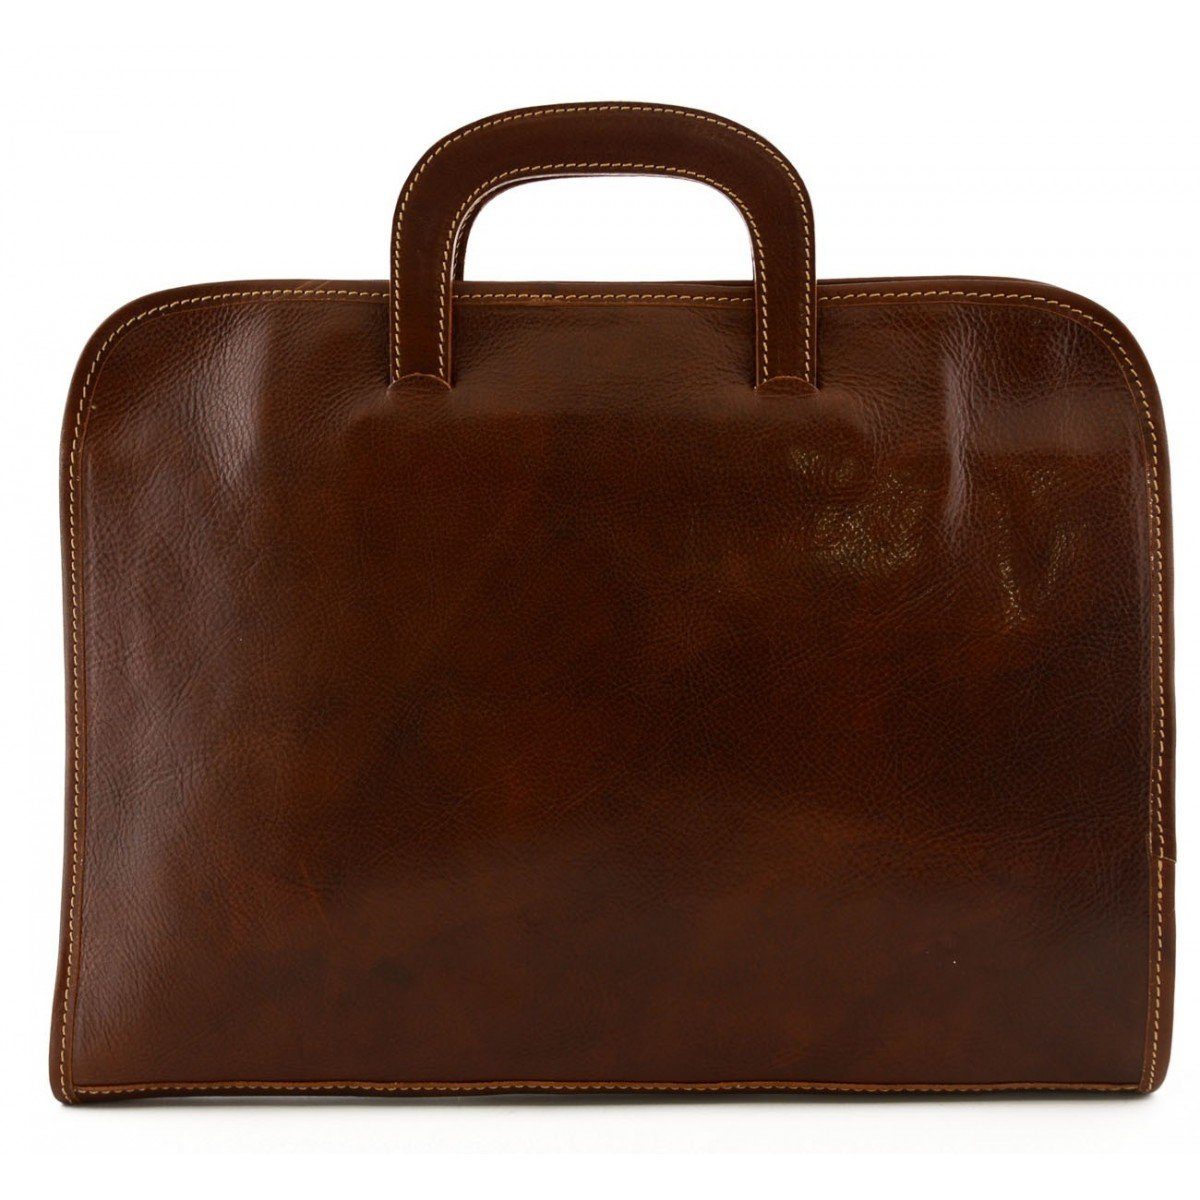 Made In Italy Leather A4 Document Folder With 3 Compartments Color Brown - Business Bag   B0183BGZZQ